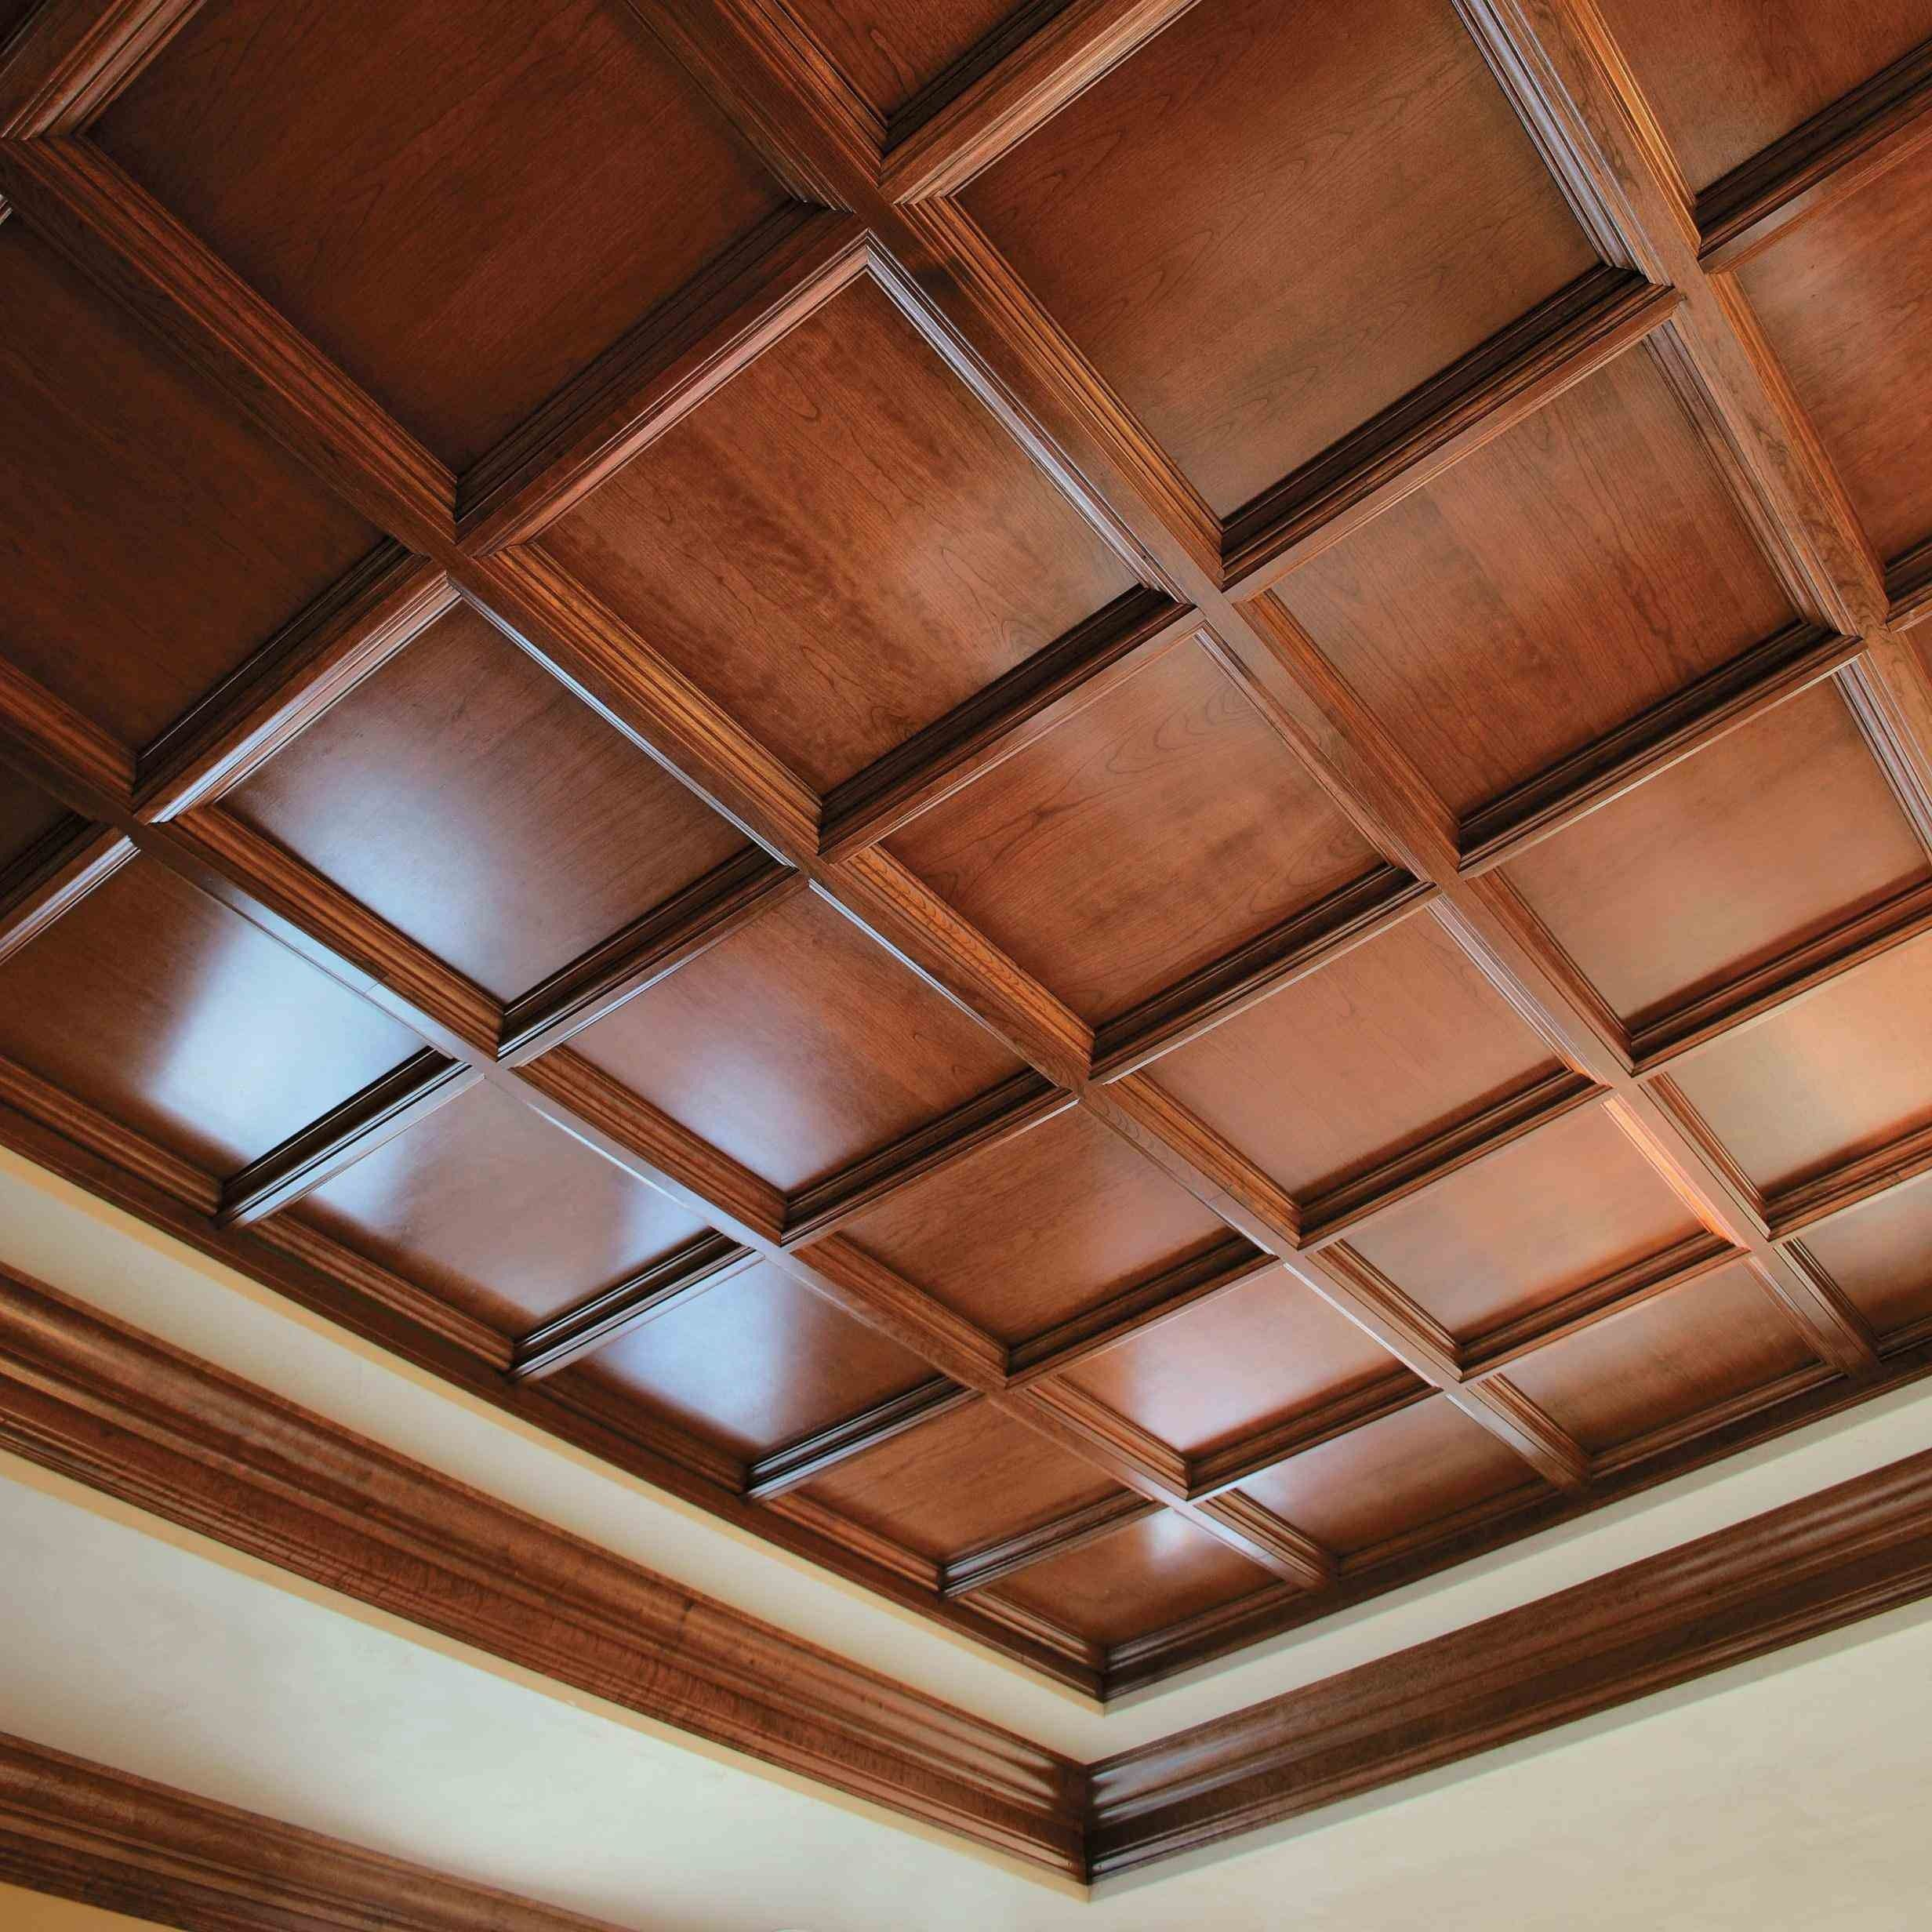 Basement Drop Ceiling Tiles Wood Ceiling Panels Dropped